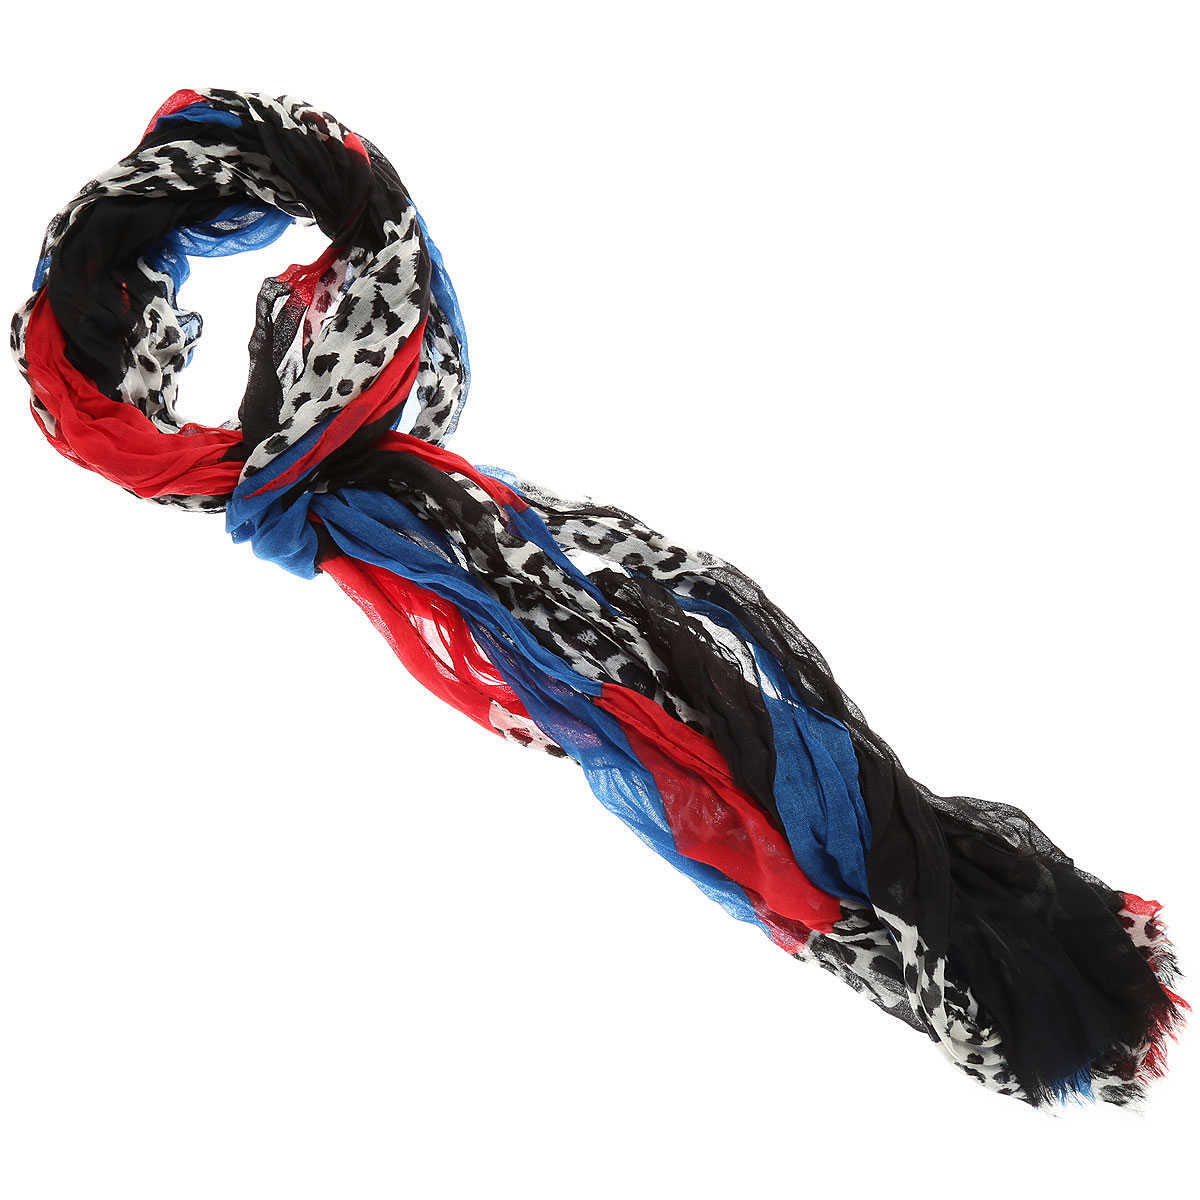 Yves Saint Laurent Scarf for Women On Sale in Outlet Black DK - GOOFASH - Womens SCARFS